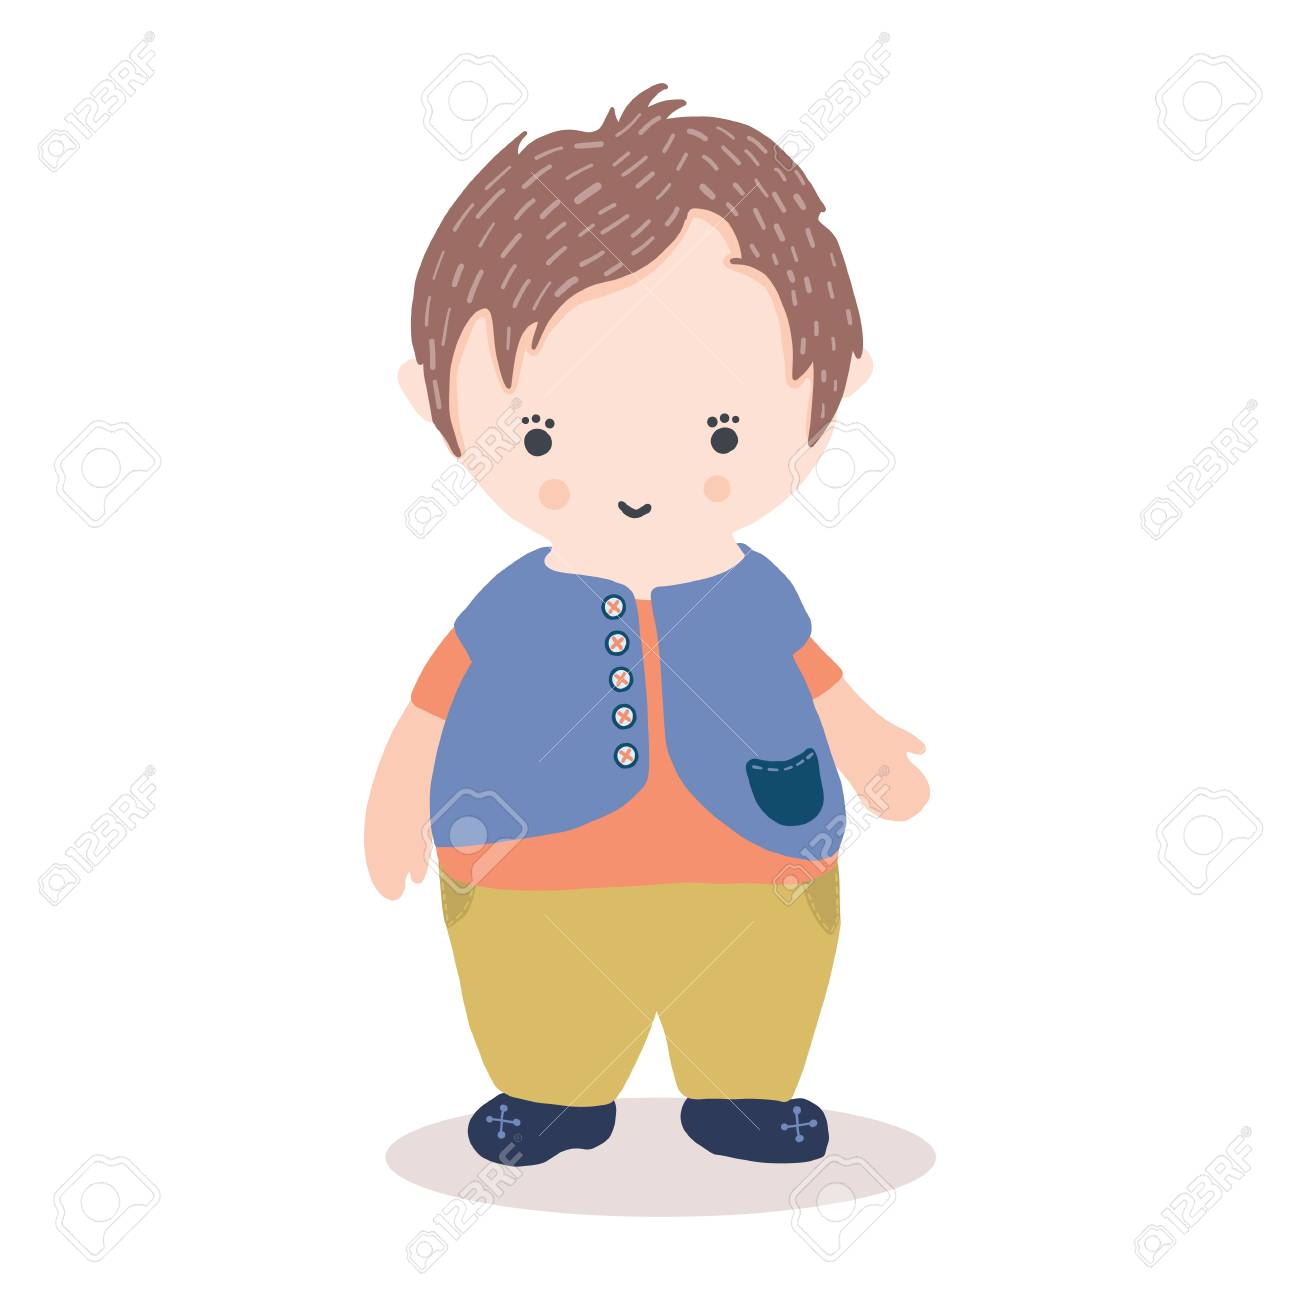 Cute Illustration Of Kawaii Little Boy Character With Waistcoat